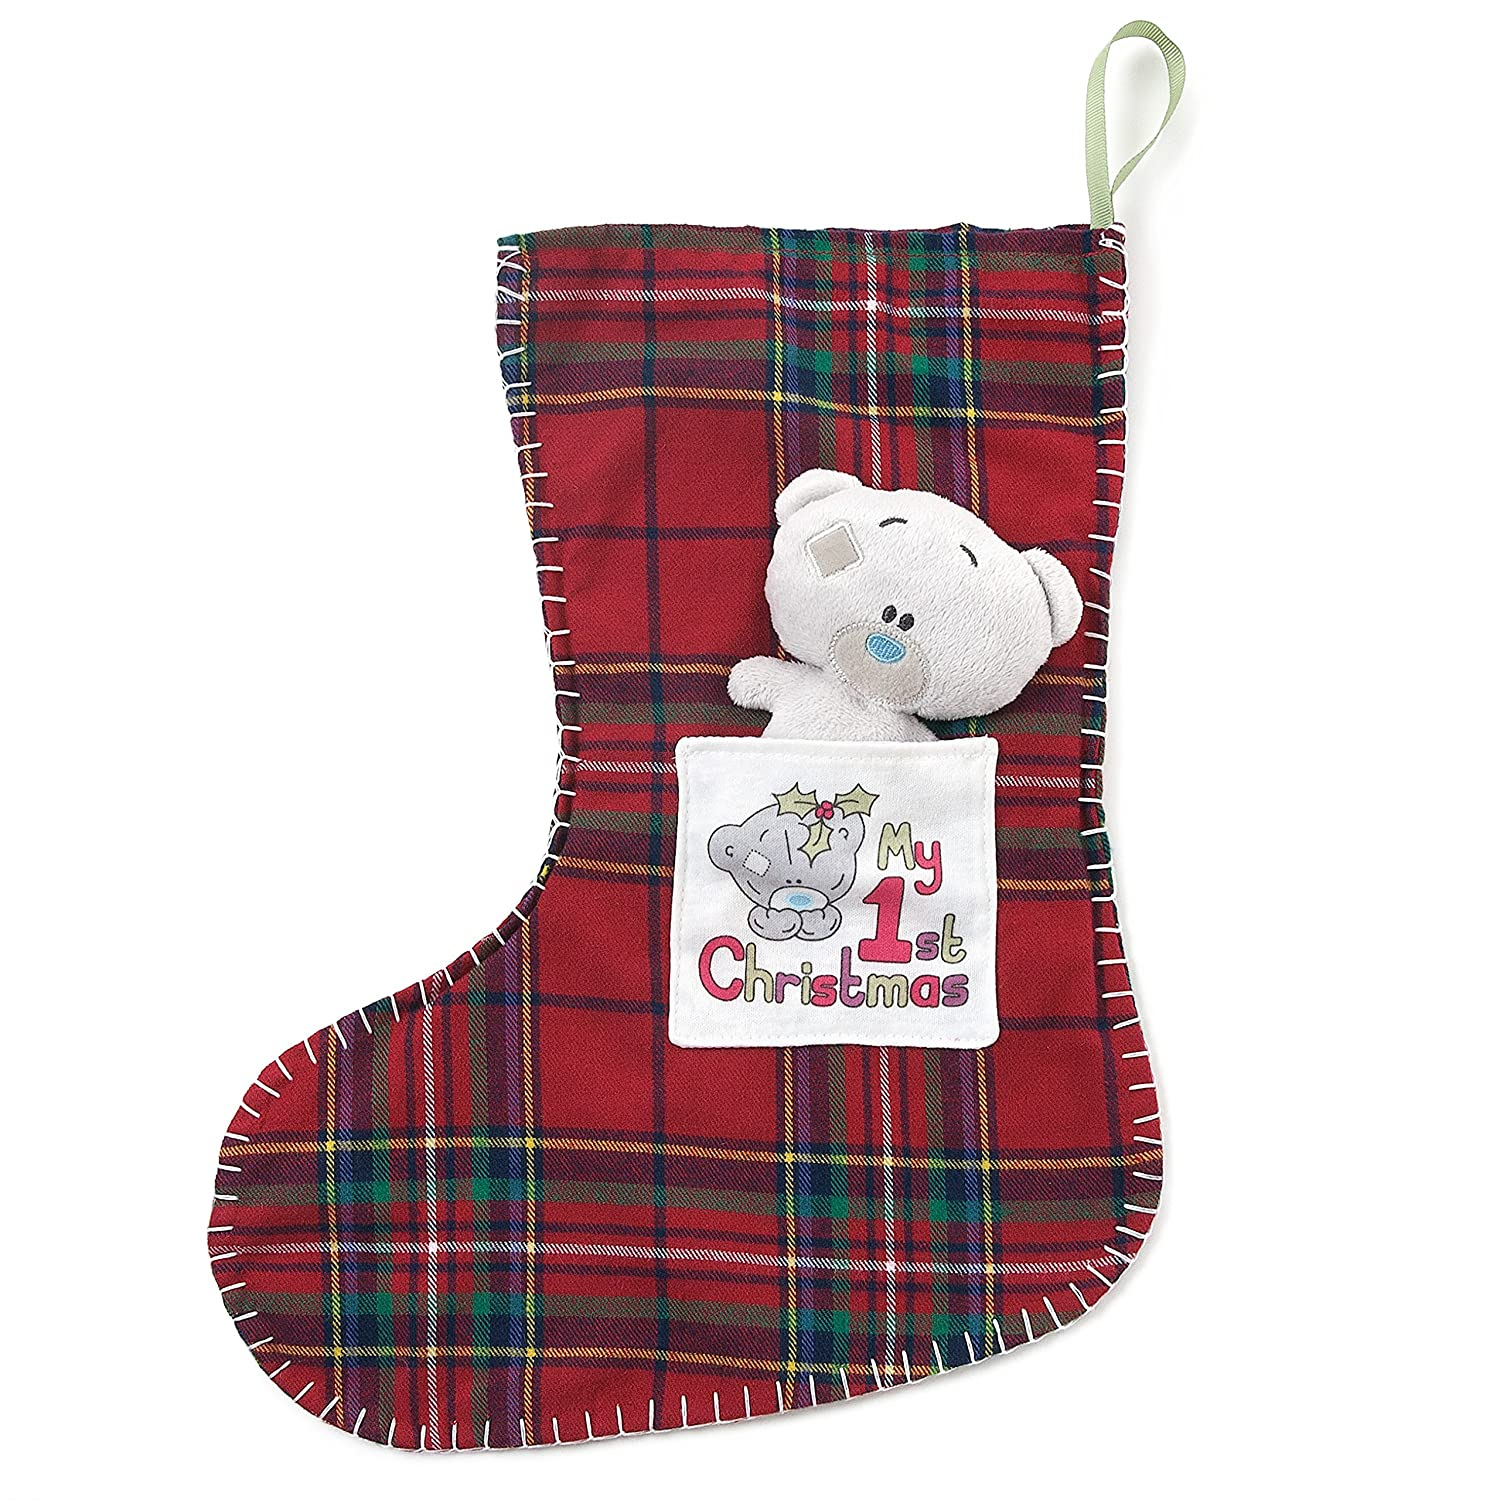 Tiny Tatty Teddy Me To You My 1st Christmas Stocking and Teddy Bear Soft Toy G92Q0161